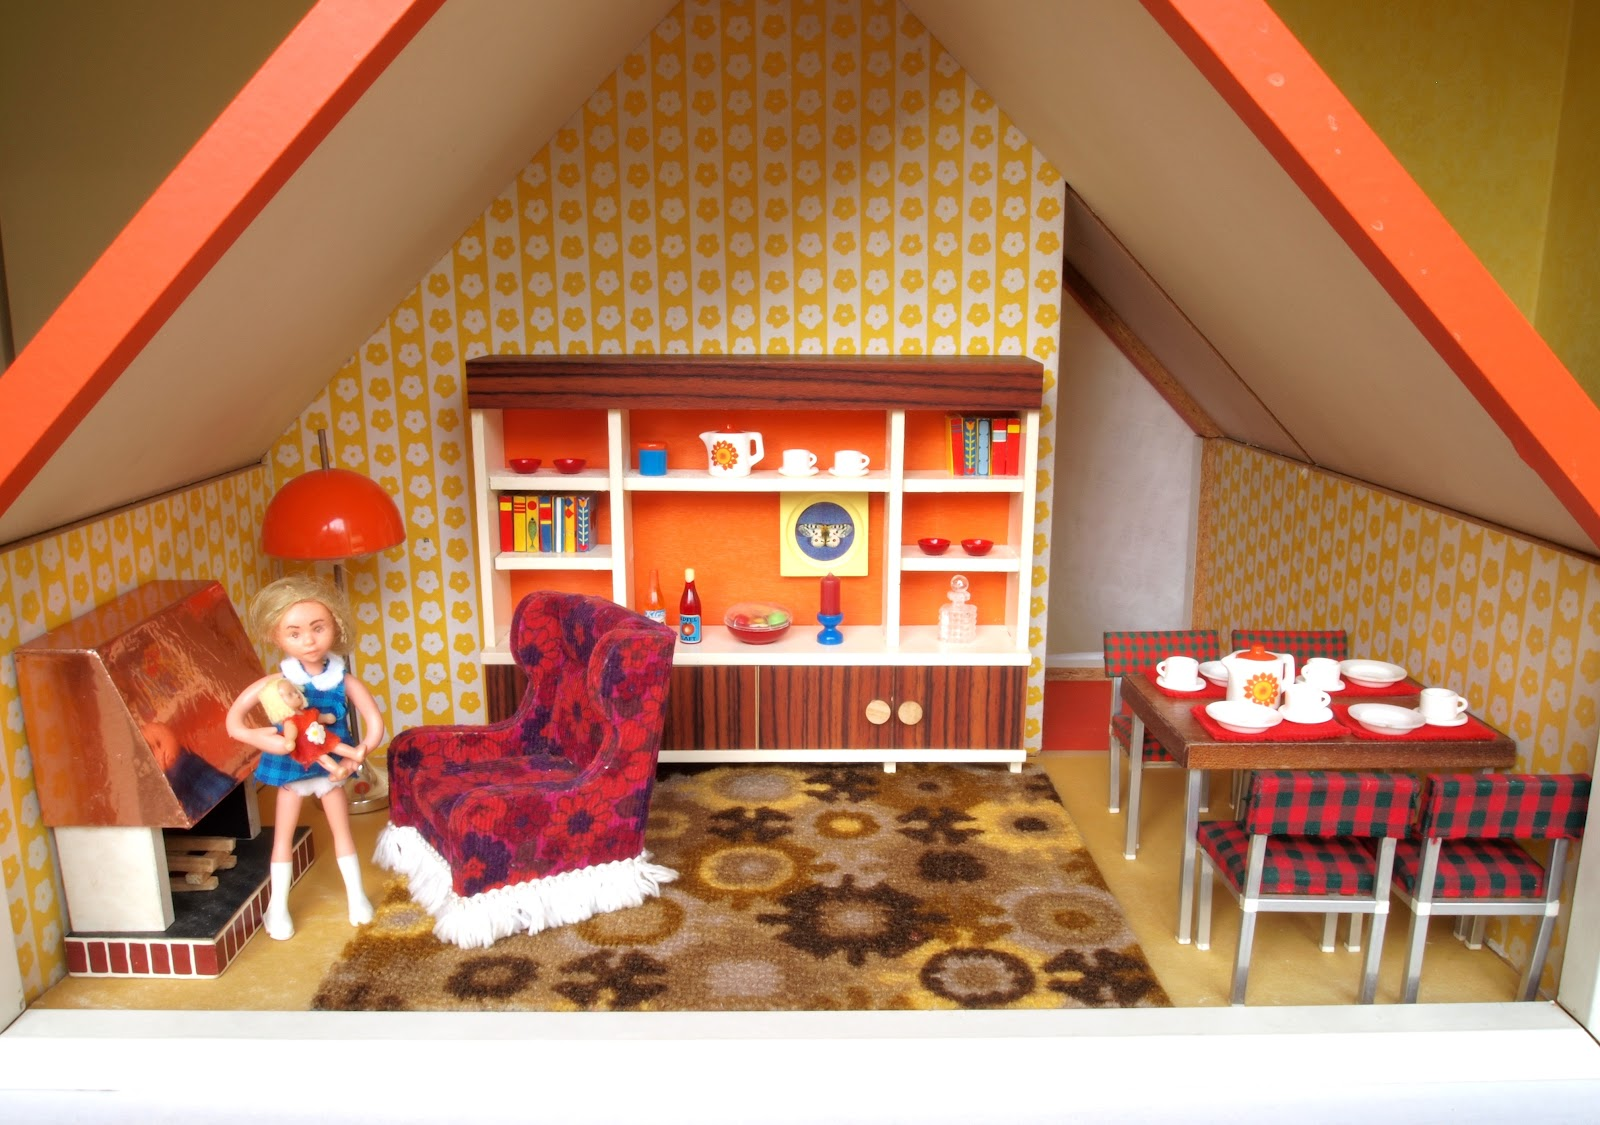 diepuppenstubensammlerin puppenhaus 1971 bodo hennig dolls house. Black Bedroom Furniture Sets. Home Design Ideas